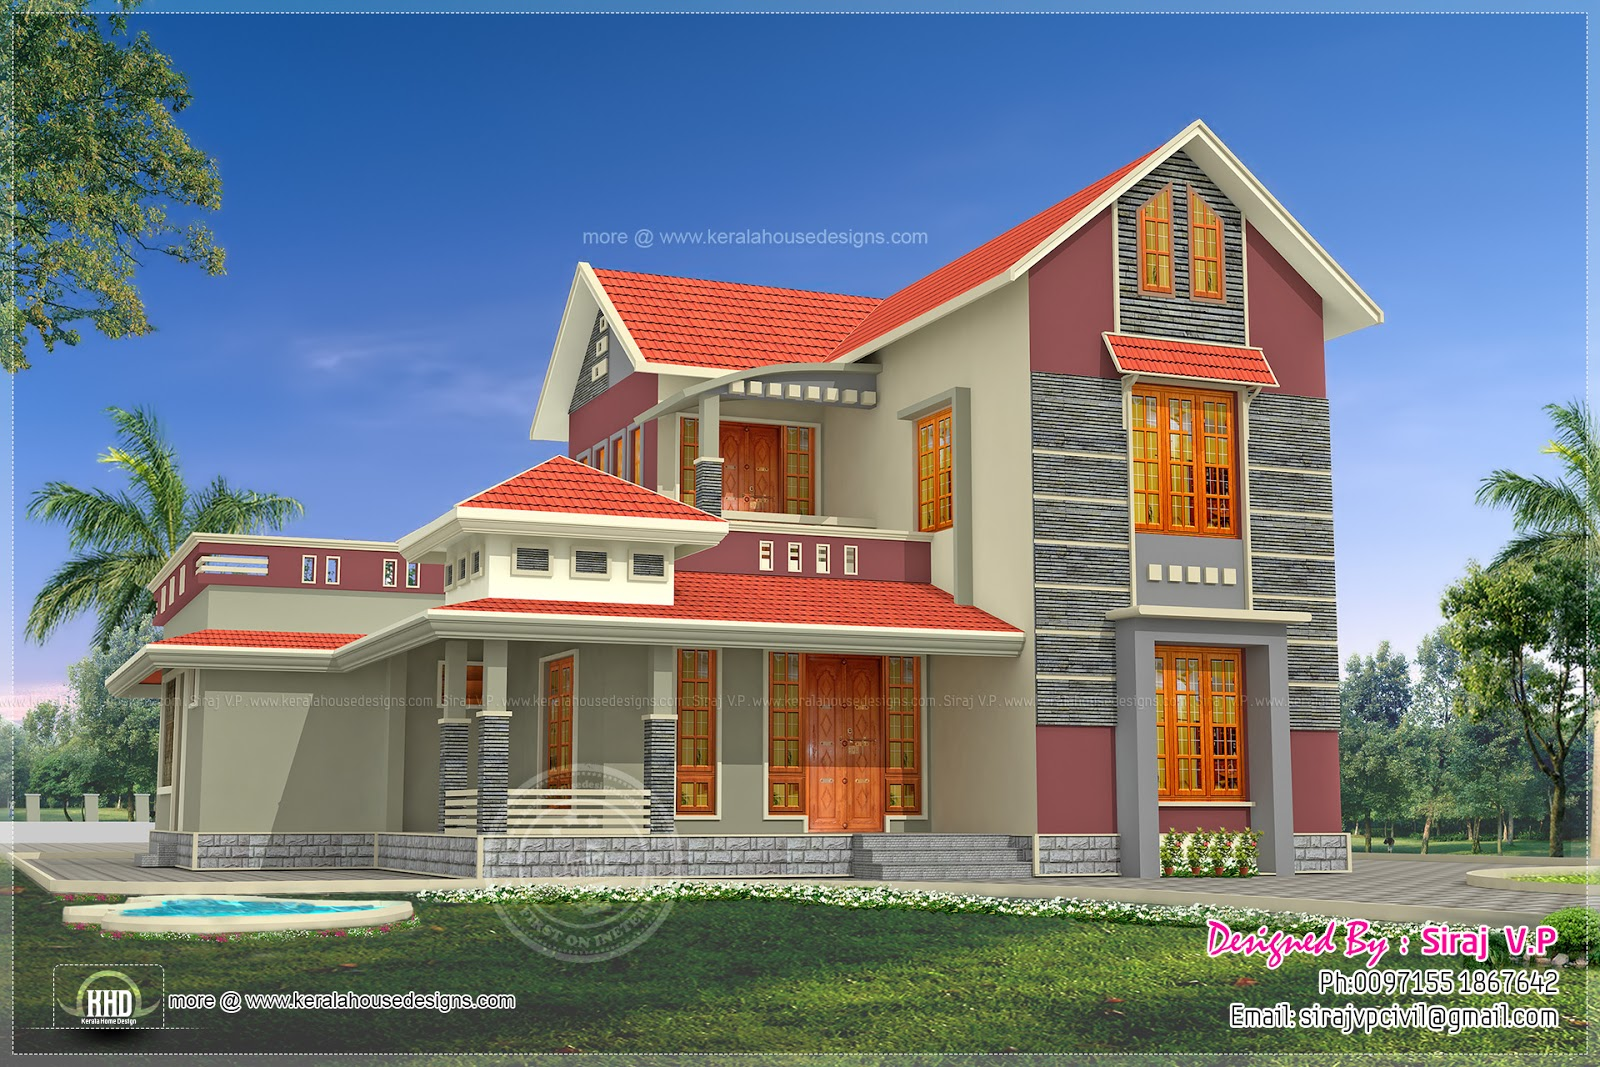 Beautiful 4 bedroom villa elevation in 2000 sq ft kerala for Home designs 2000 sq ft